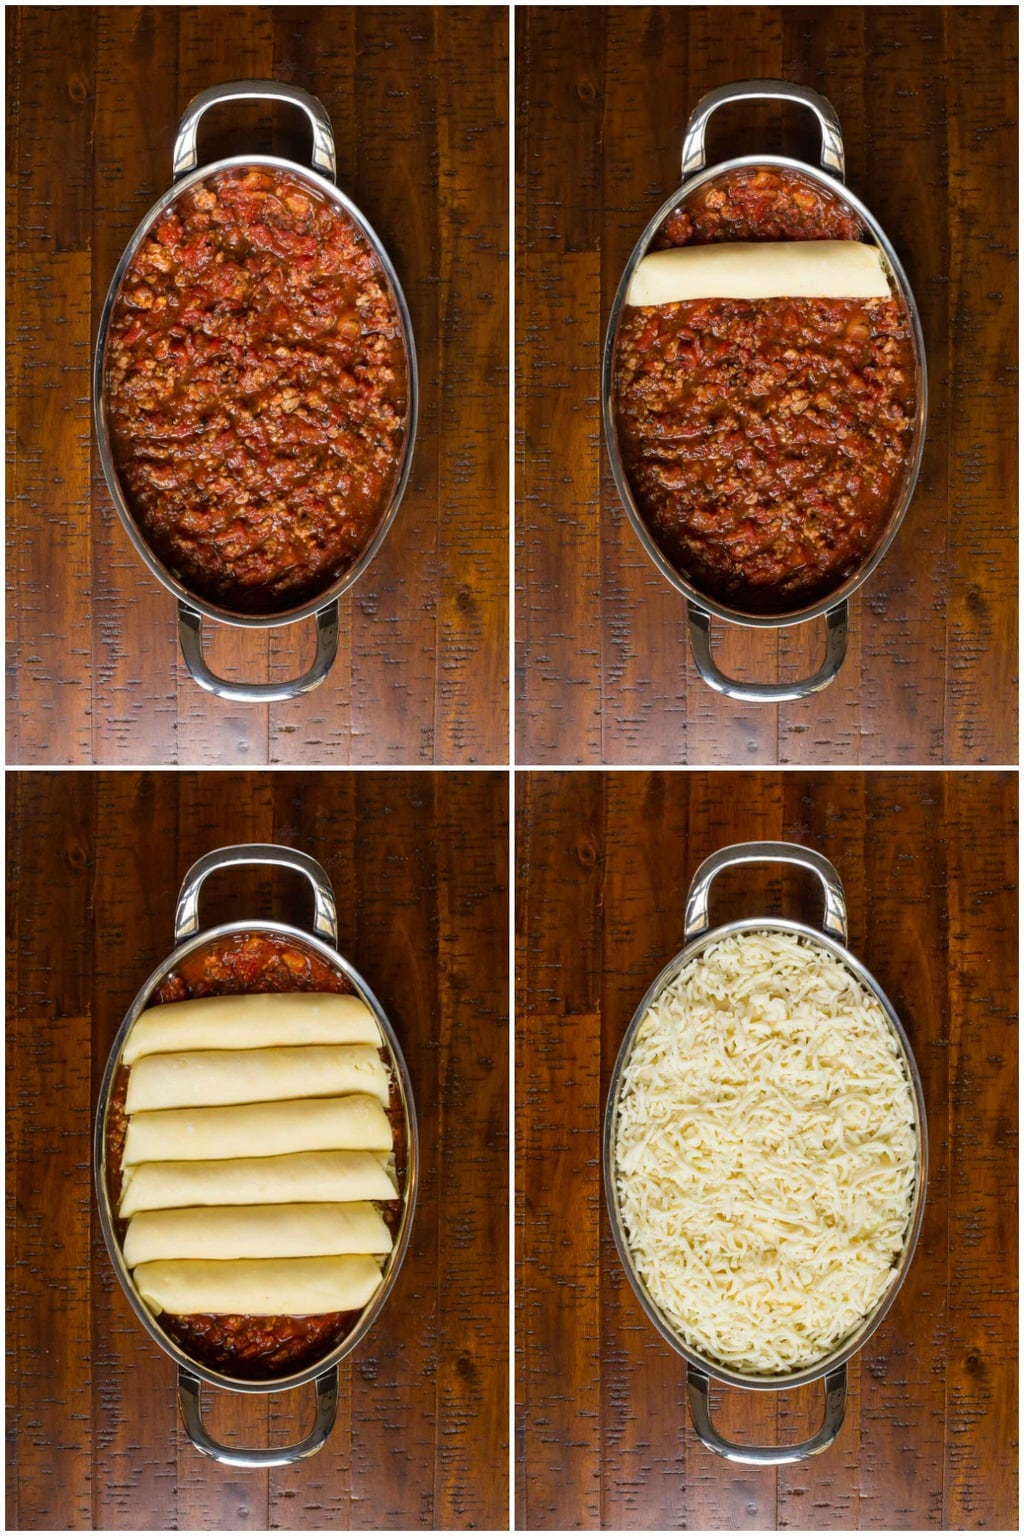 Photo collage of the process of Assembing Homemade Manicotti with cheese and meat sauce.